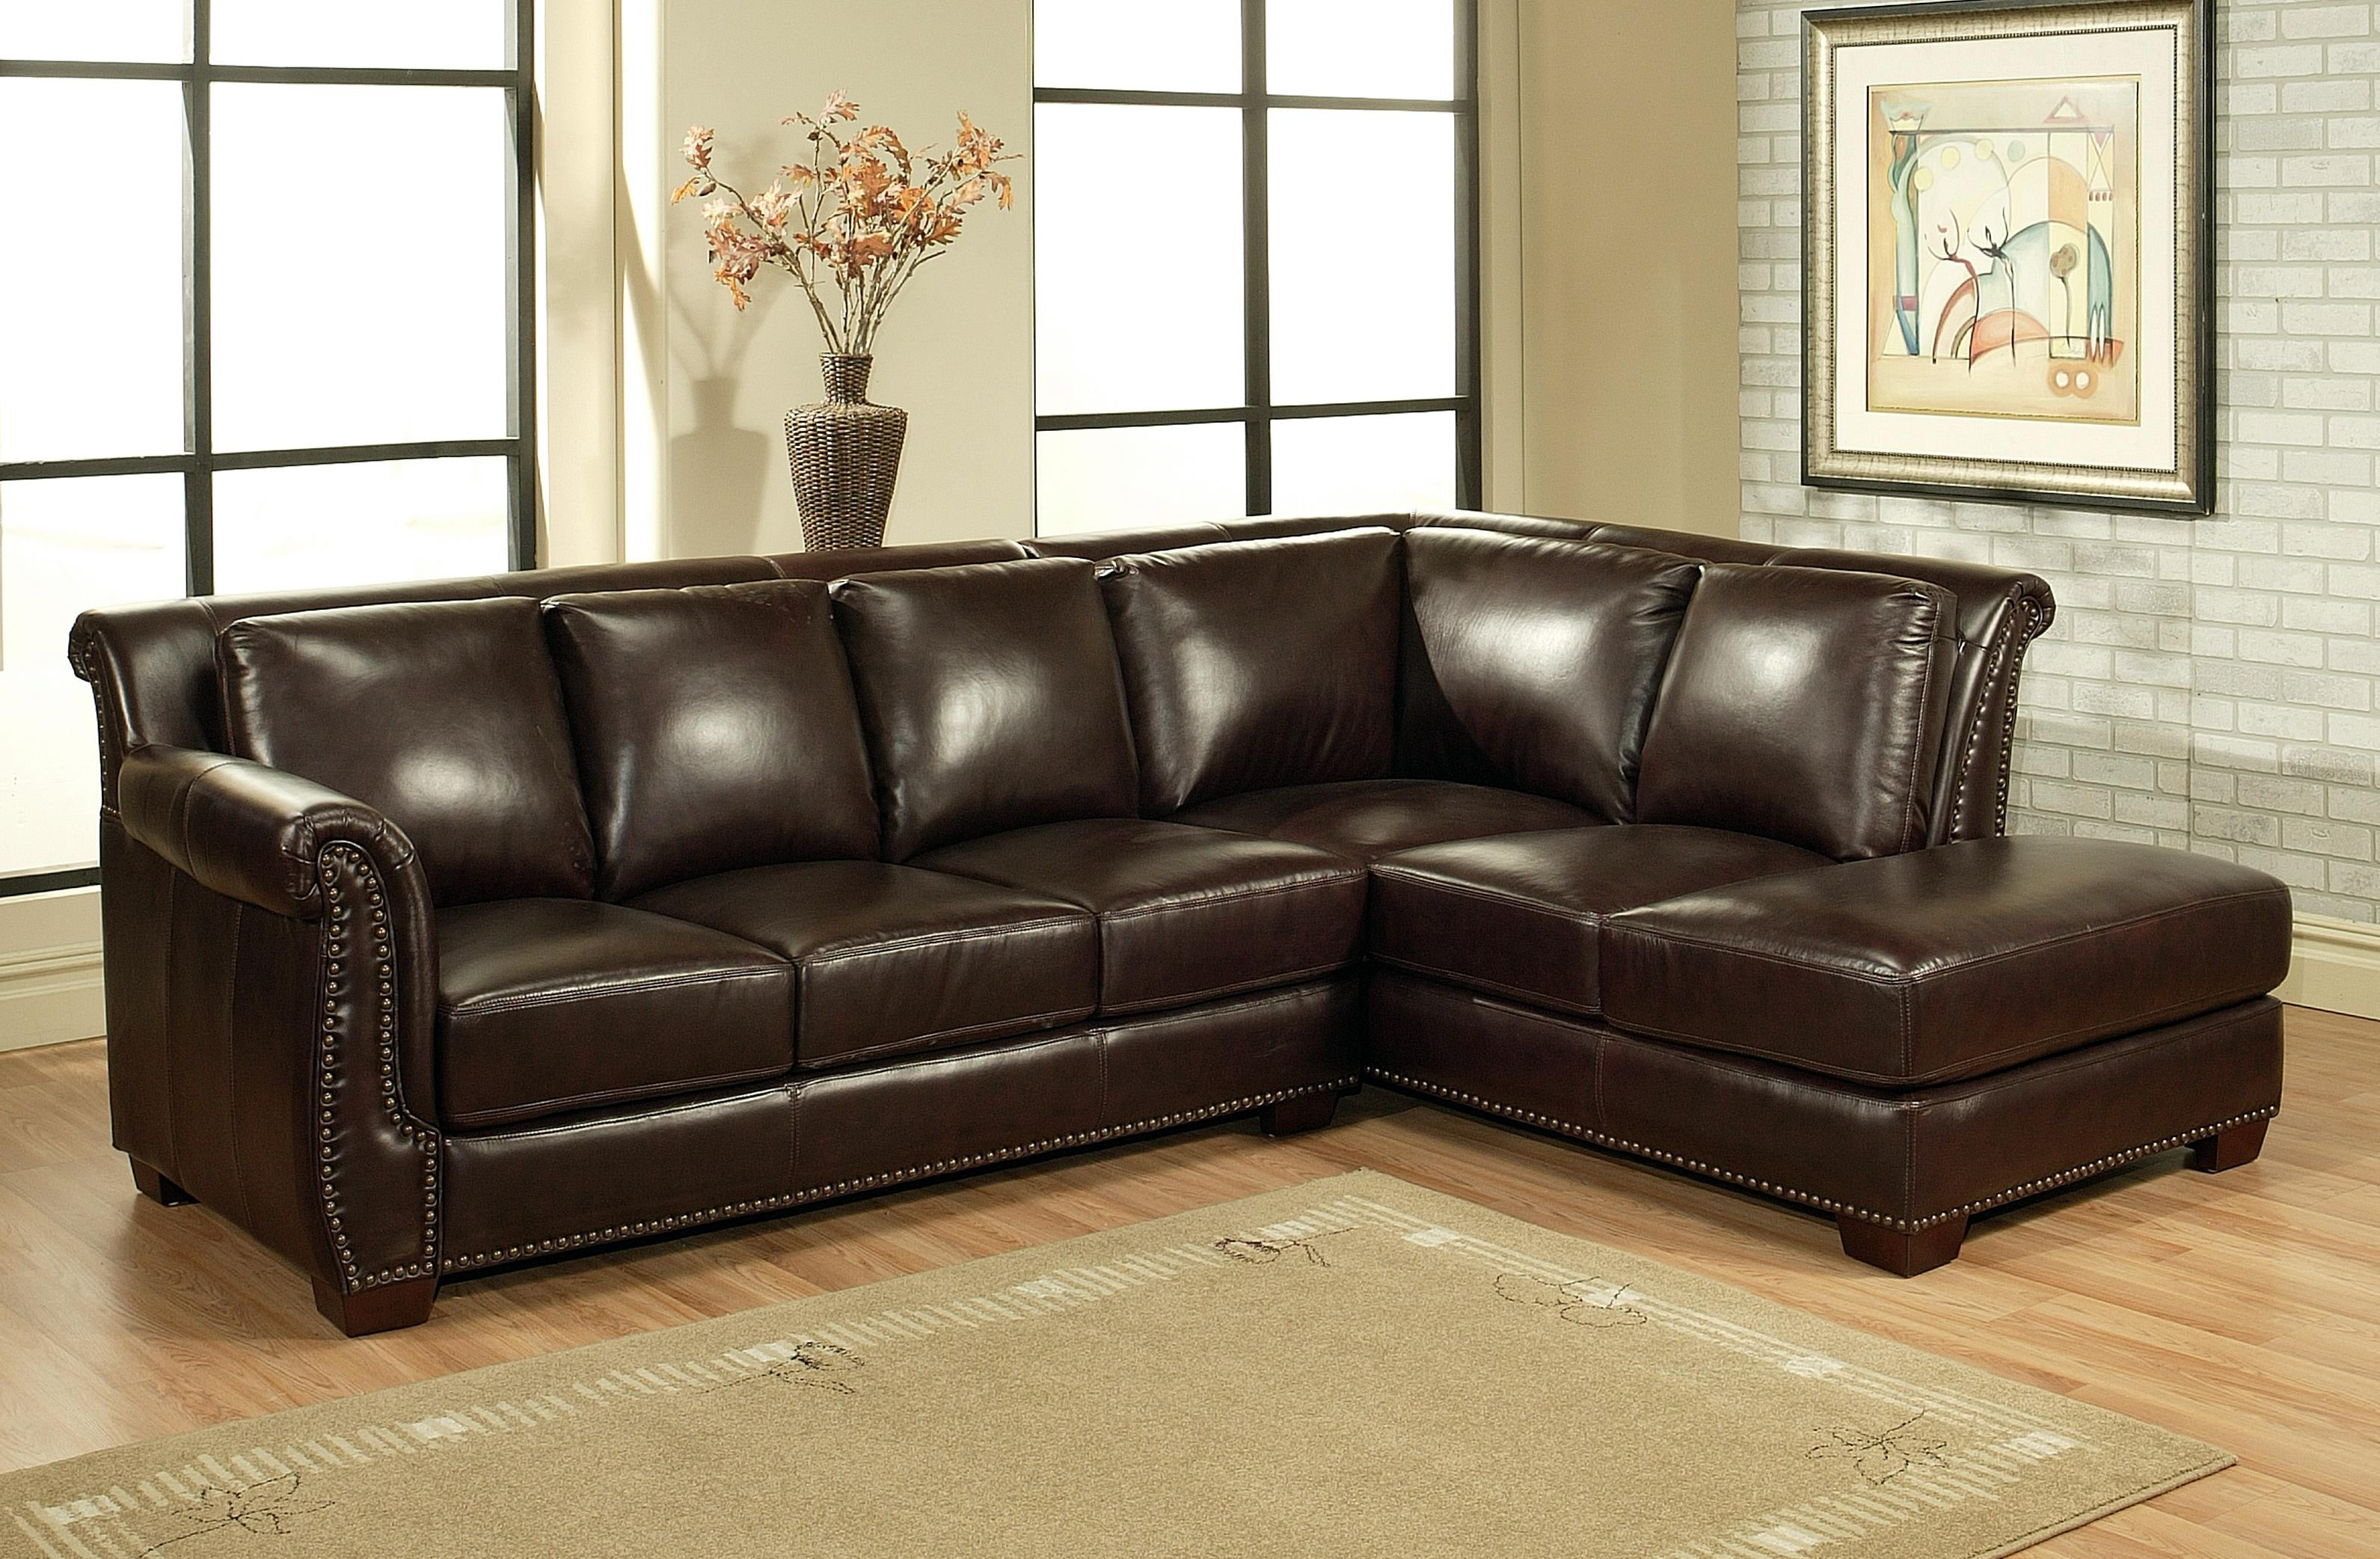 Distressed Leather Sectional - HomesFeed